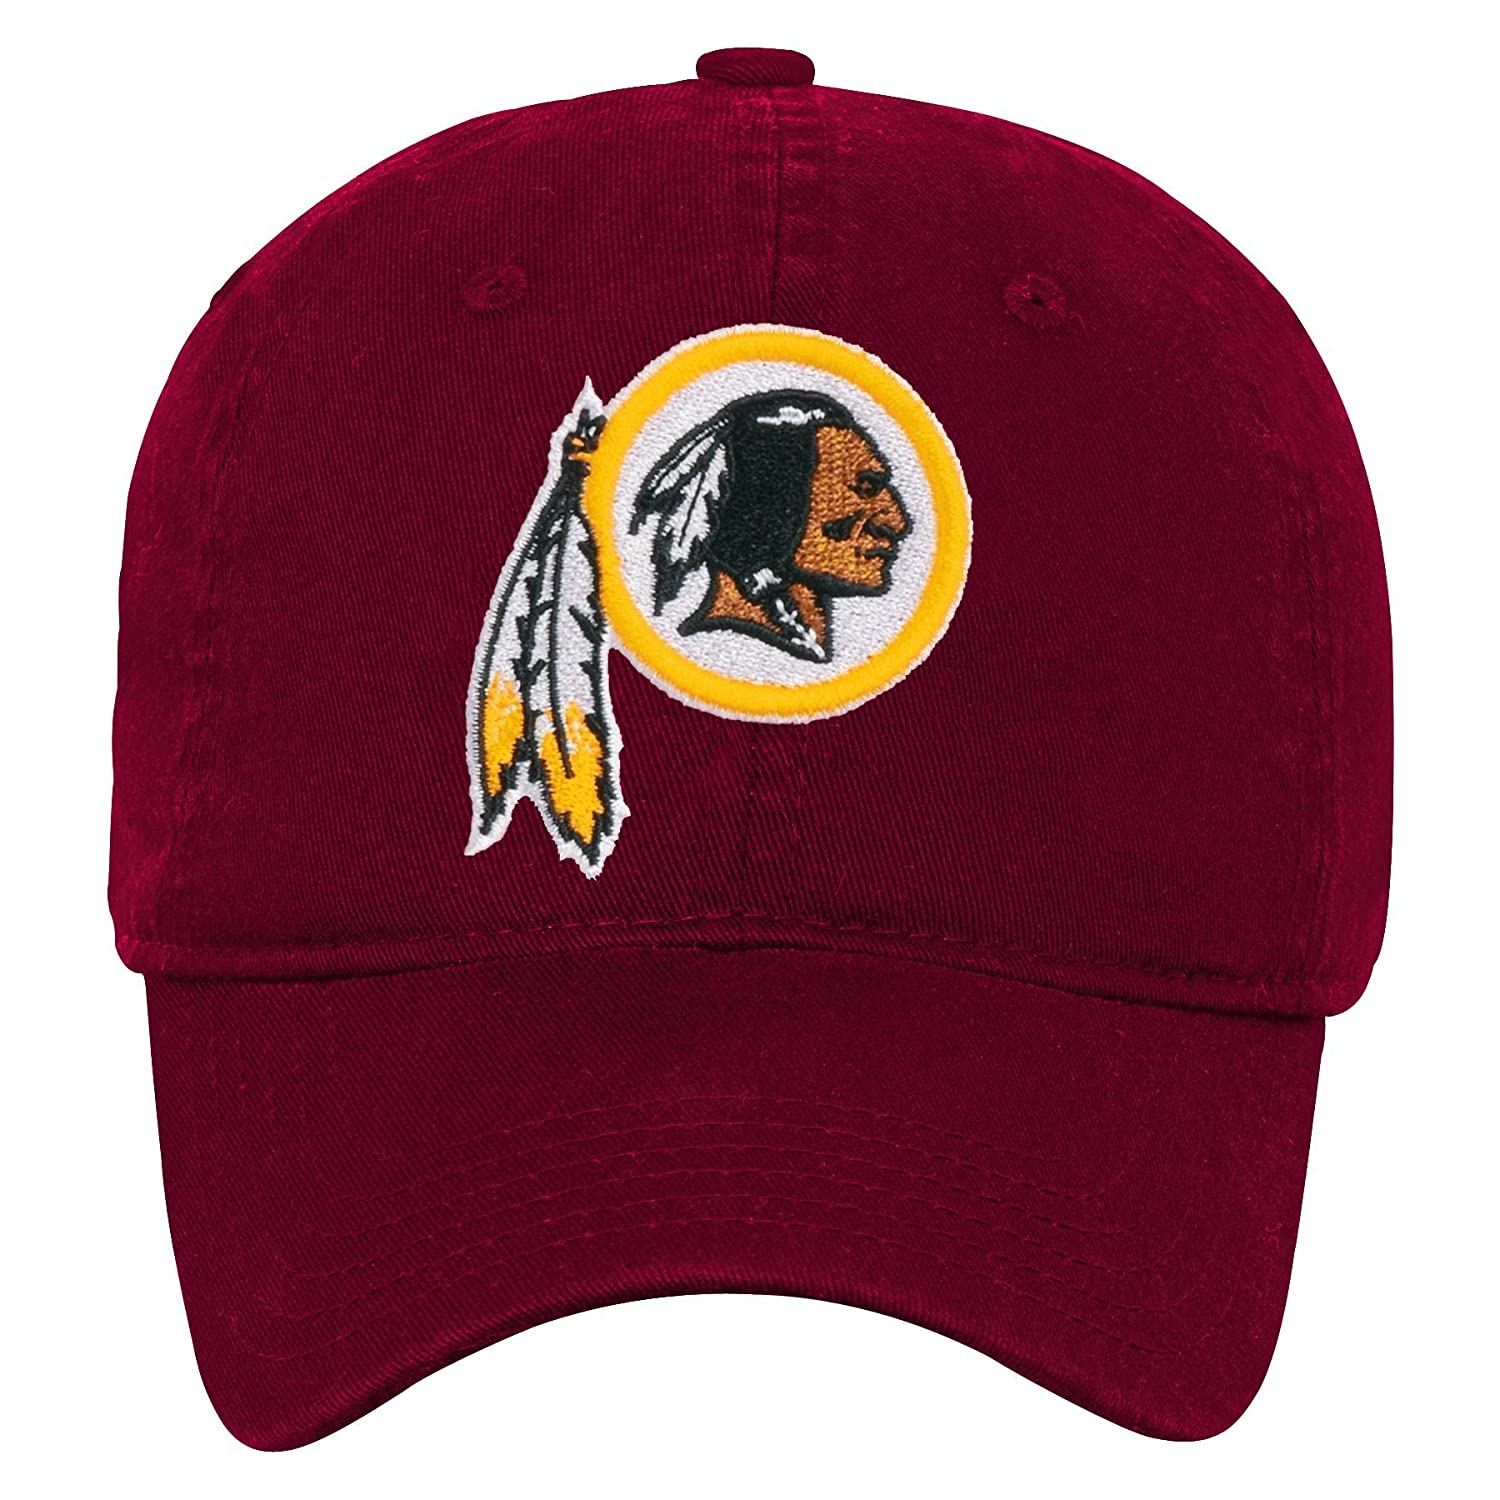 NFL Washington Redskins Youth  Outerstuff Team Slouch Adjustable Hat Youth One Size Team Color